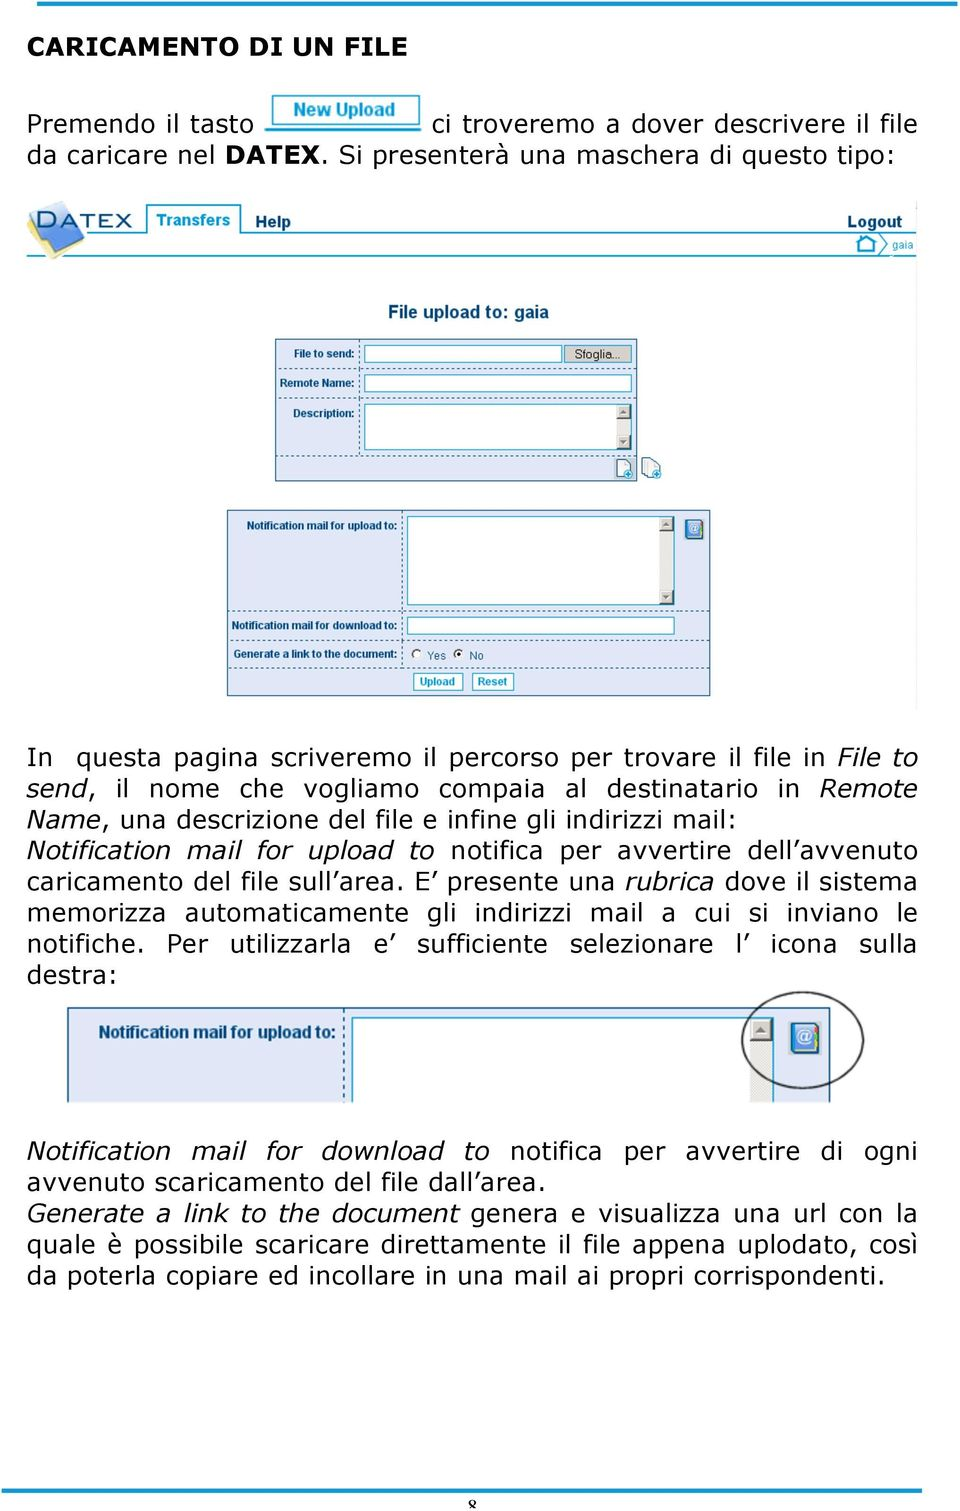 del file e infine gli indirizzi mail: Notification mail for upload to notifica per avvertire dell avvenuto caricamento del file sull area.